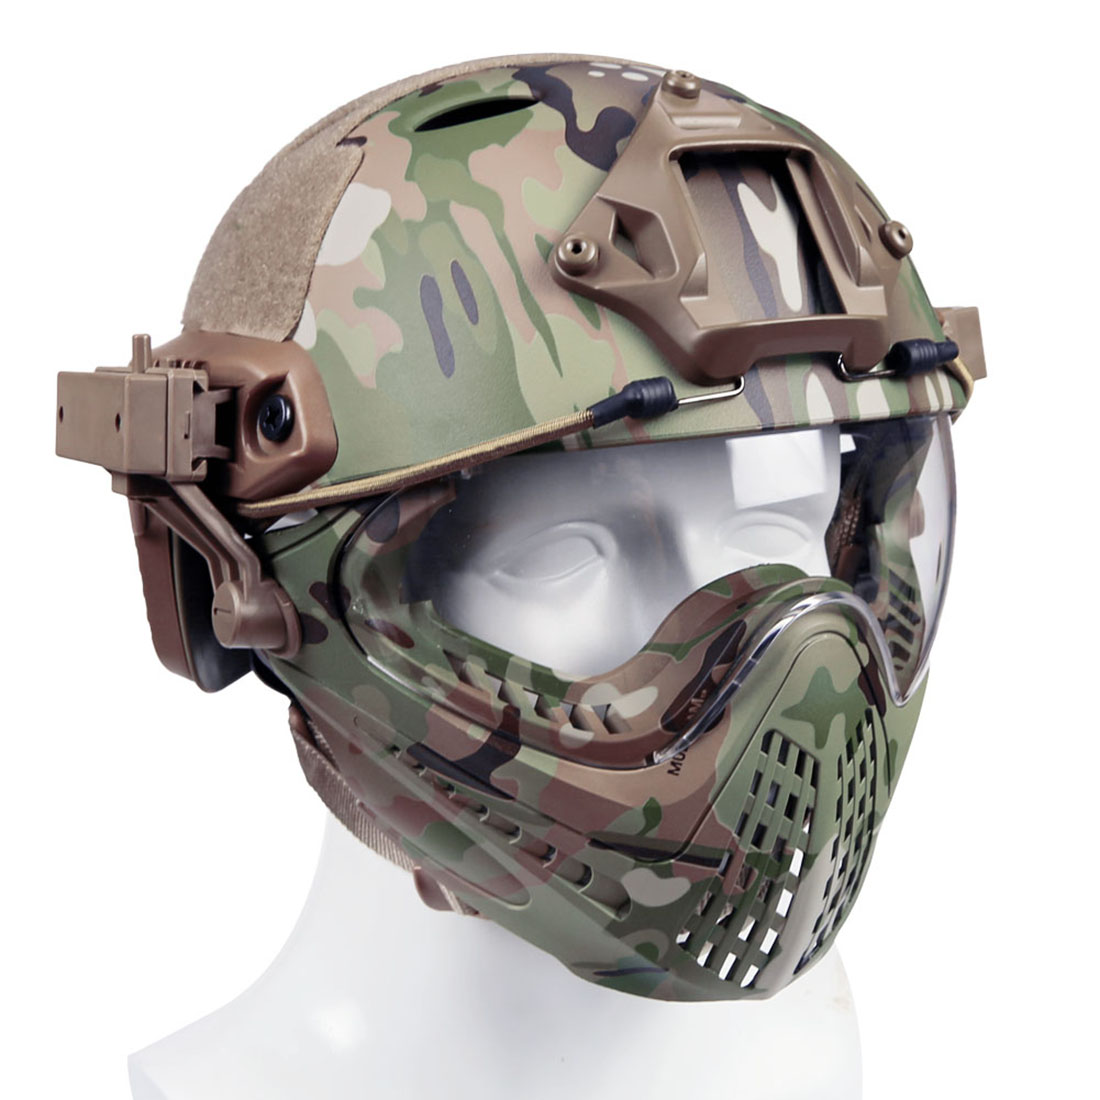 NFSTRIKE Navigator Tactical Accessories Camouflage Protecting Helmet for Airsoft Tactics Military Helmet Outdoors Activities New